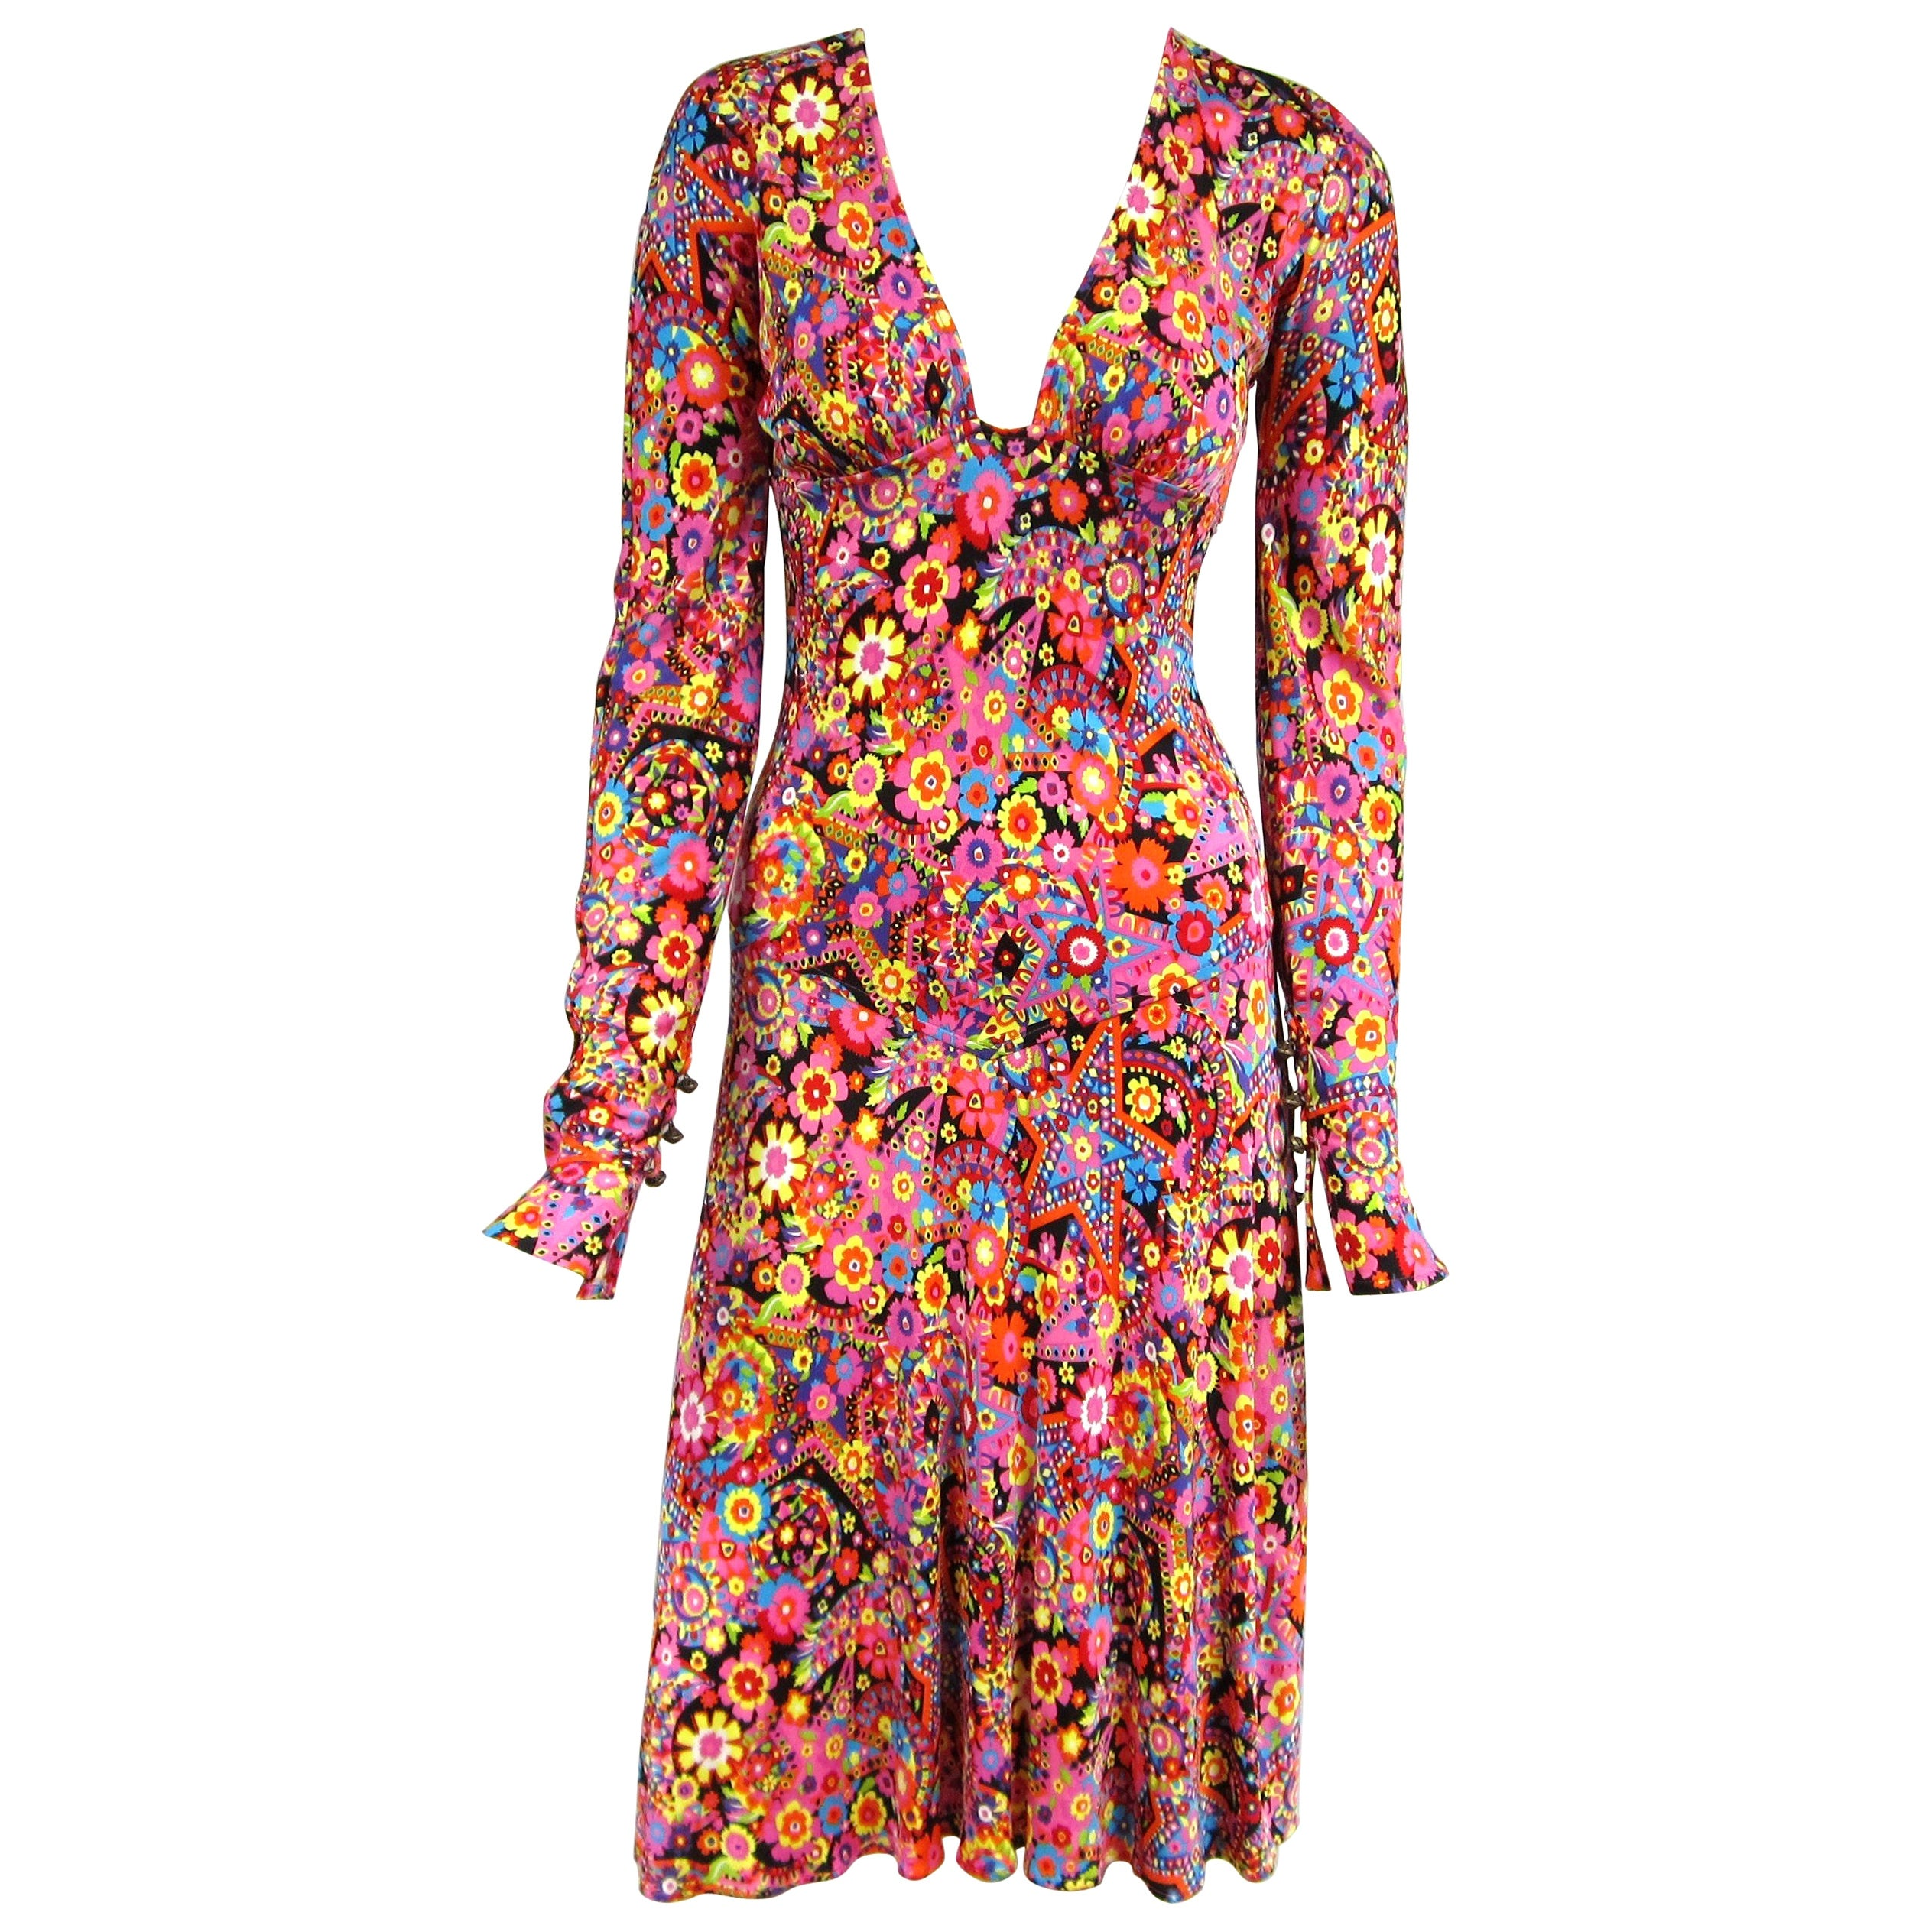 Gianni Versace Couture Floral Abstract Dress 2002